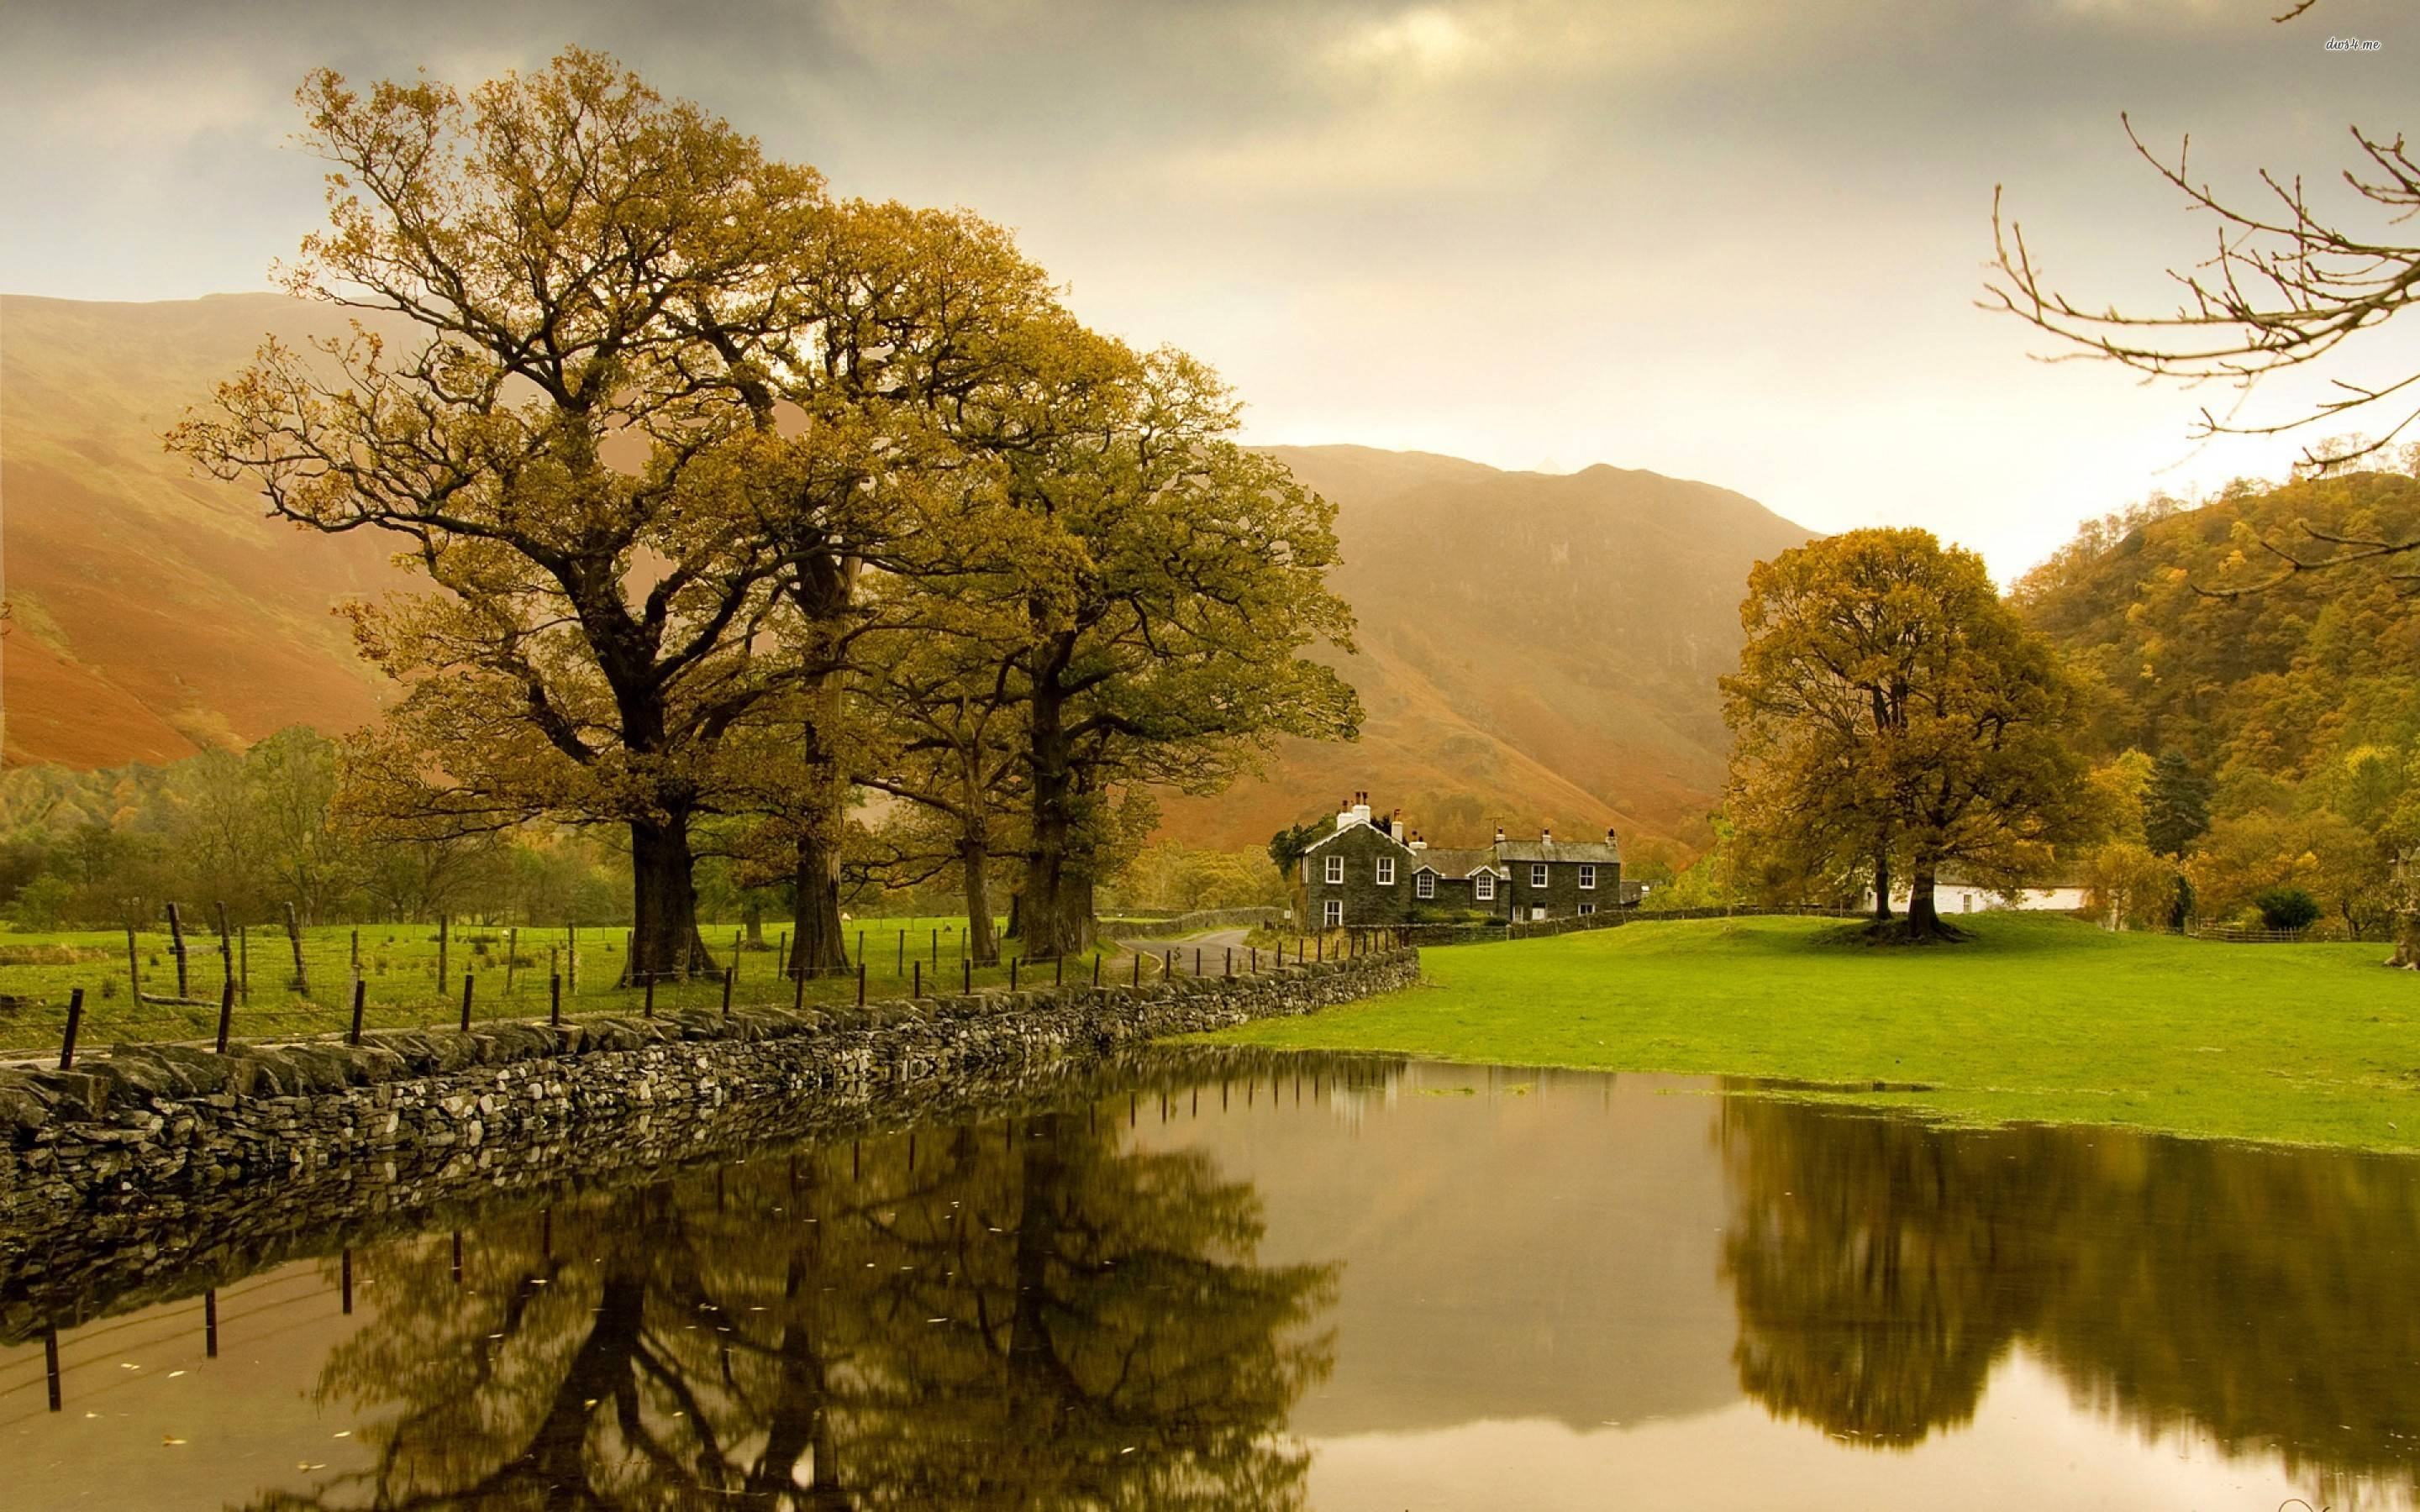 English countryside wallpapers wallpaper cave for Countryside wallpaper for walls